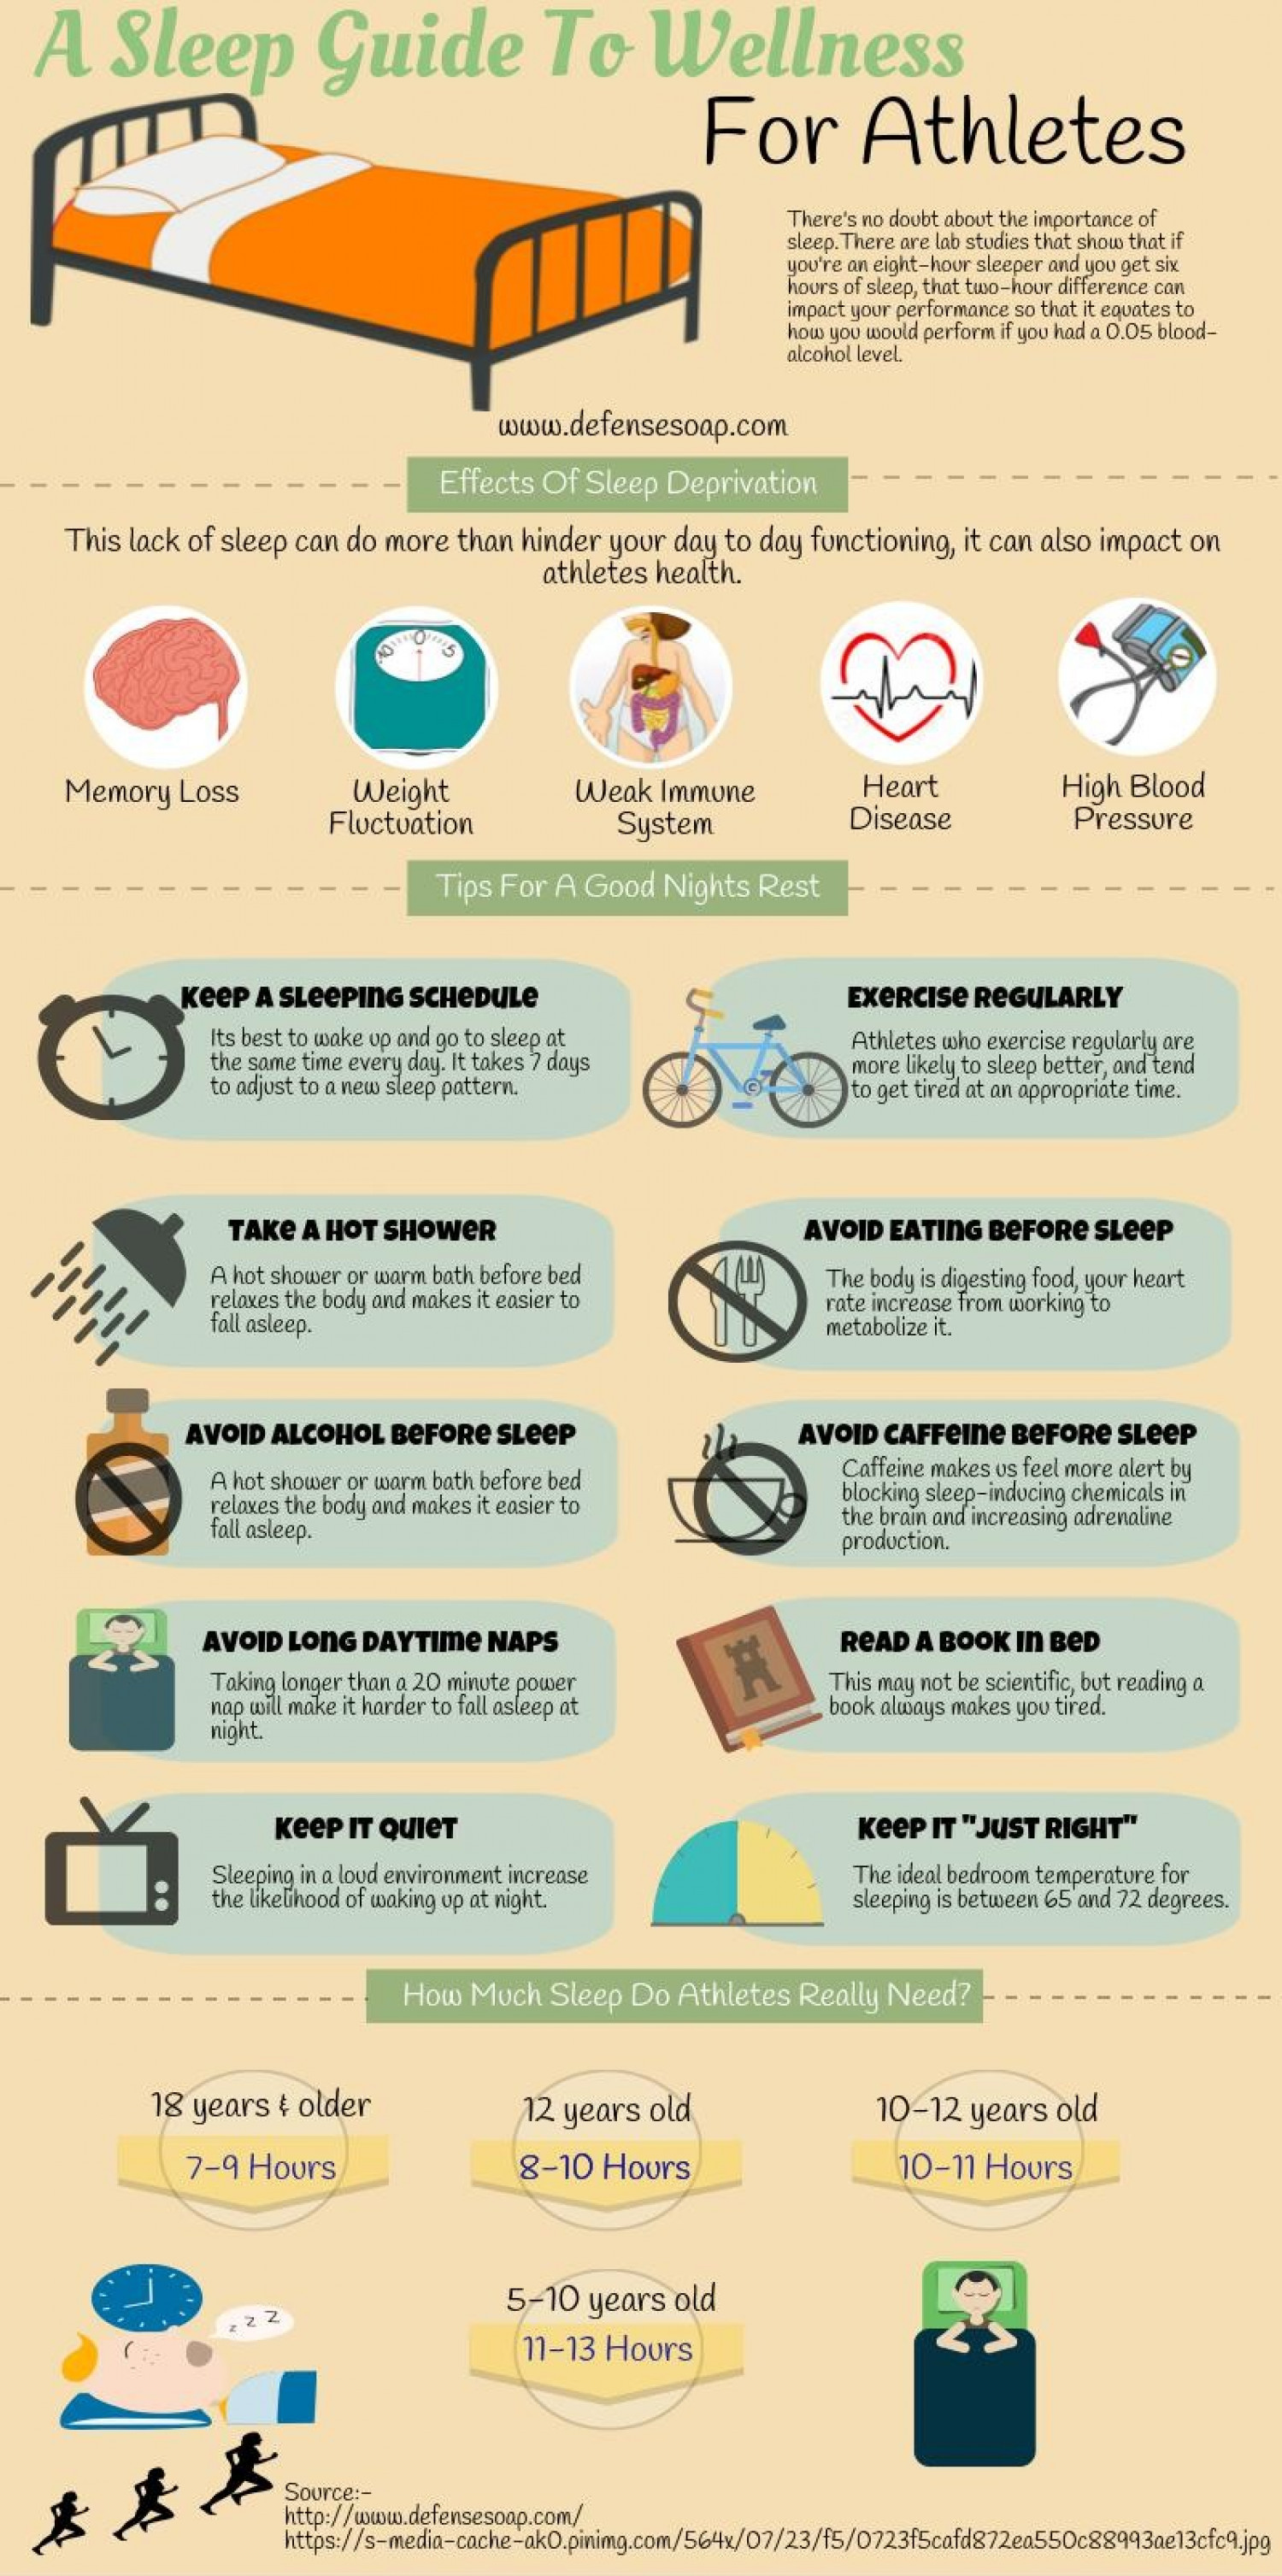 Why sleep for athletes is important? How knowing sleeping hours keeps them healthy? Infographic